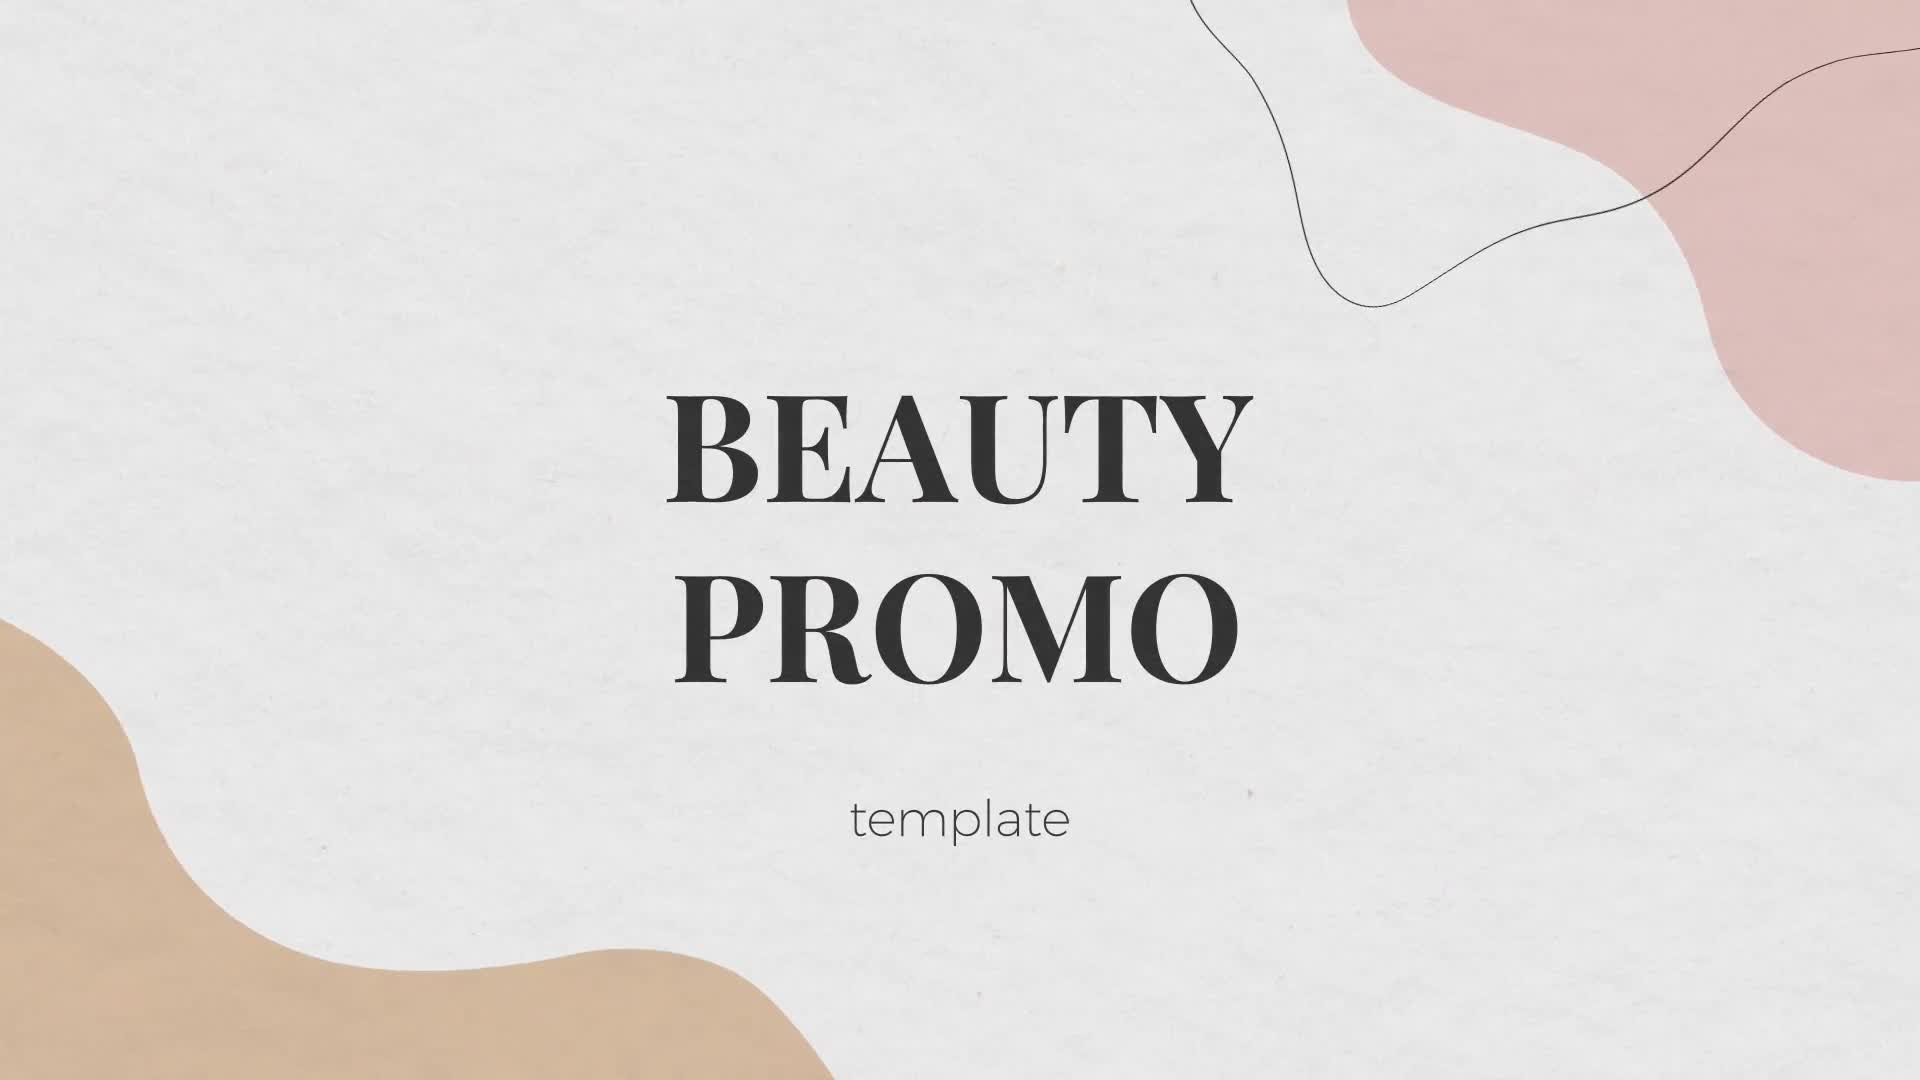 Beauty Shop Promo Videohive 29855902 After Effects Image 1